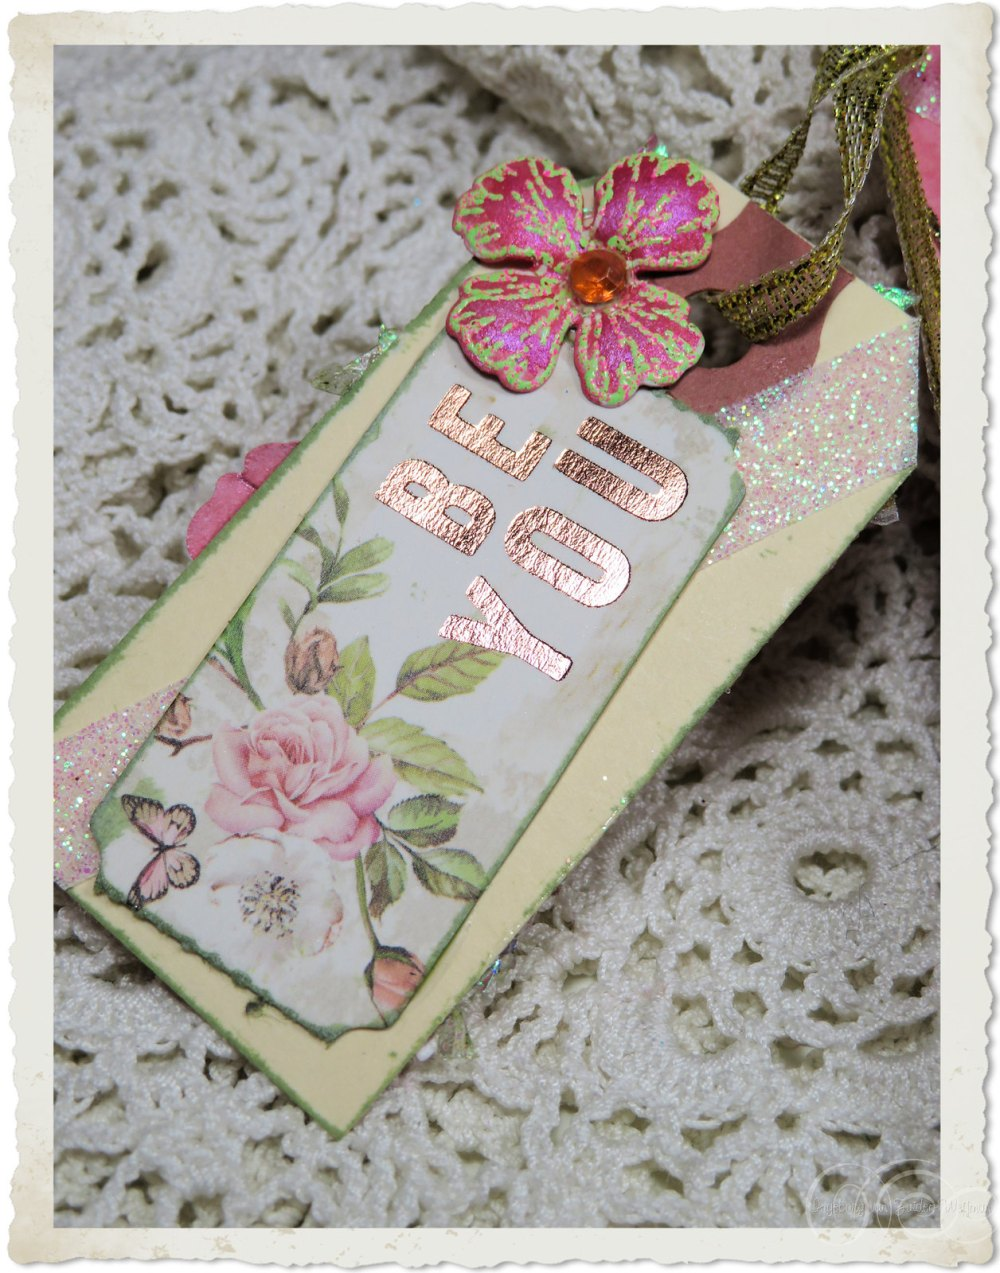 Handmade paper tag with wordart by Ingeborg van Zuiden